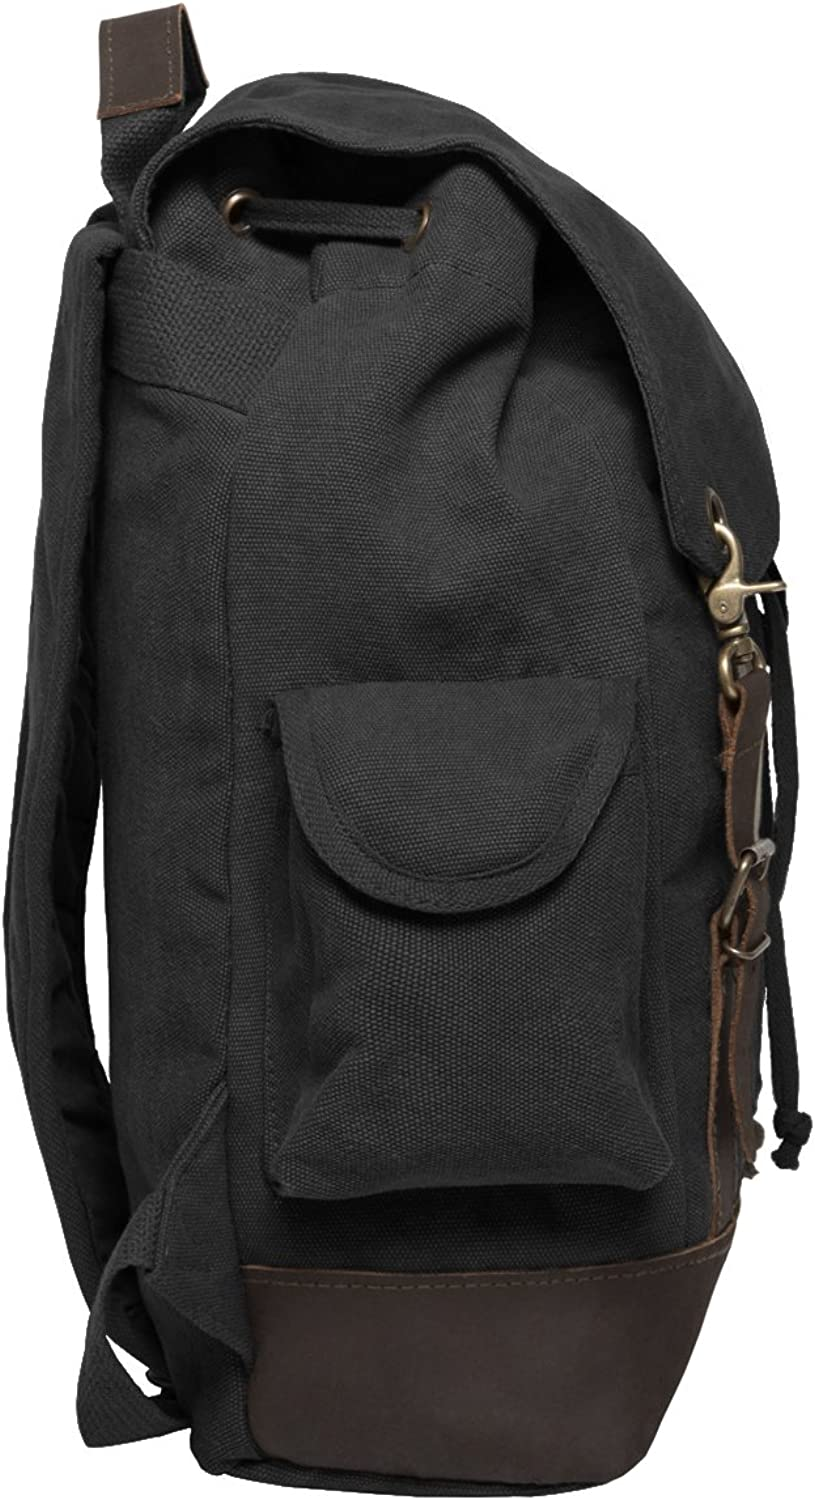 Flash Comic Superhero Vintage Canvas Rucksack Backpack with Leather Straps